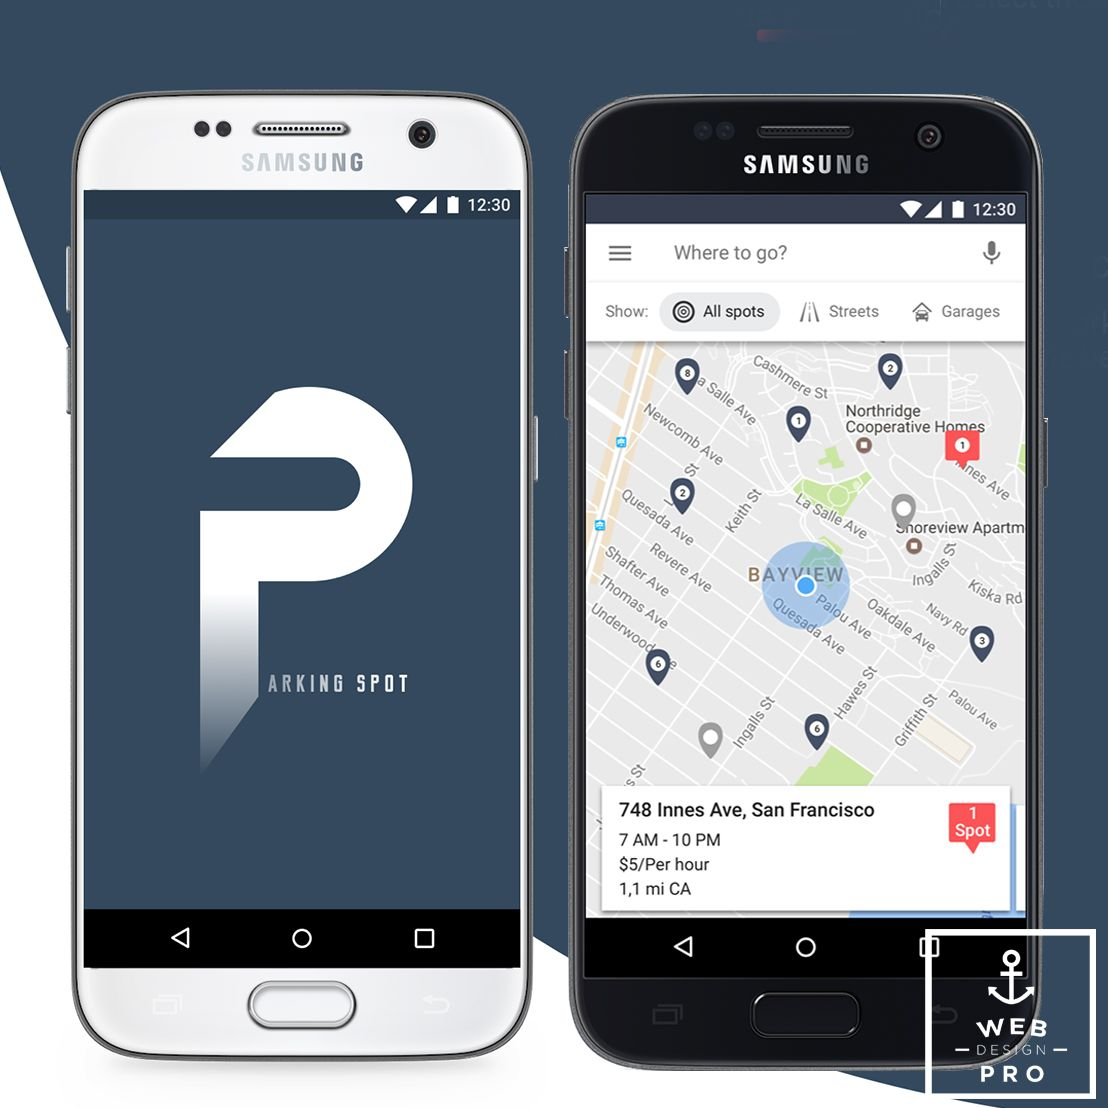 Parking Spot App >> Parking Spot Mobile App An App To Search The Nearest And